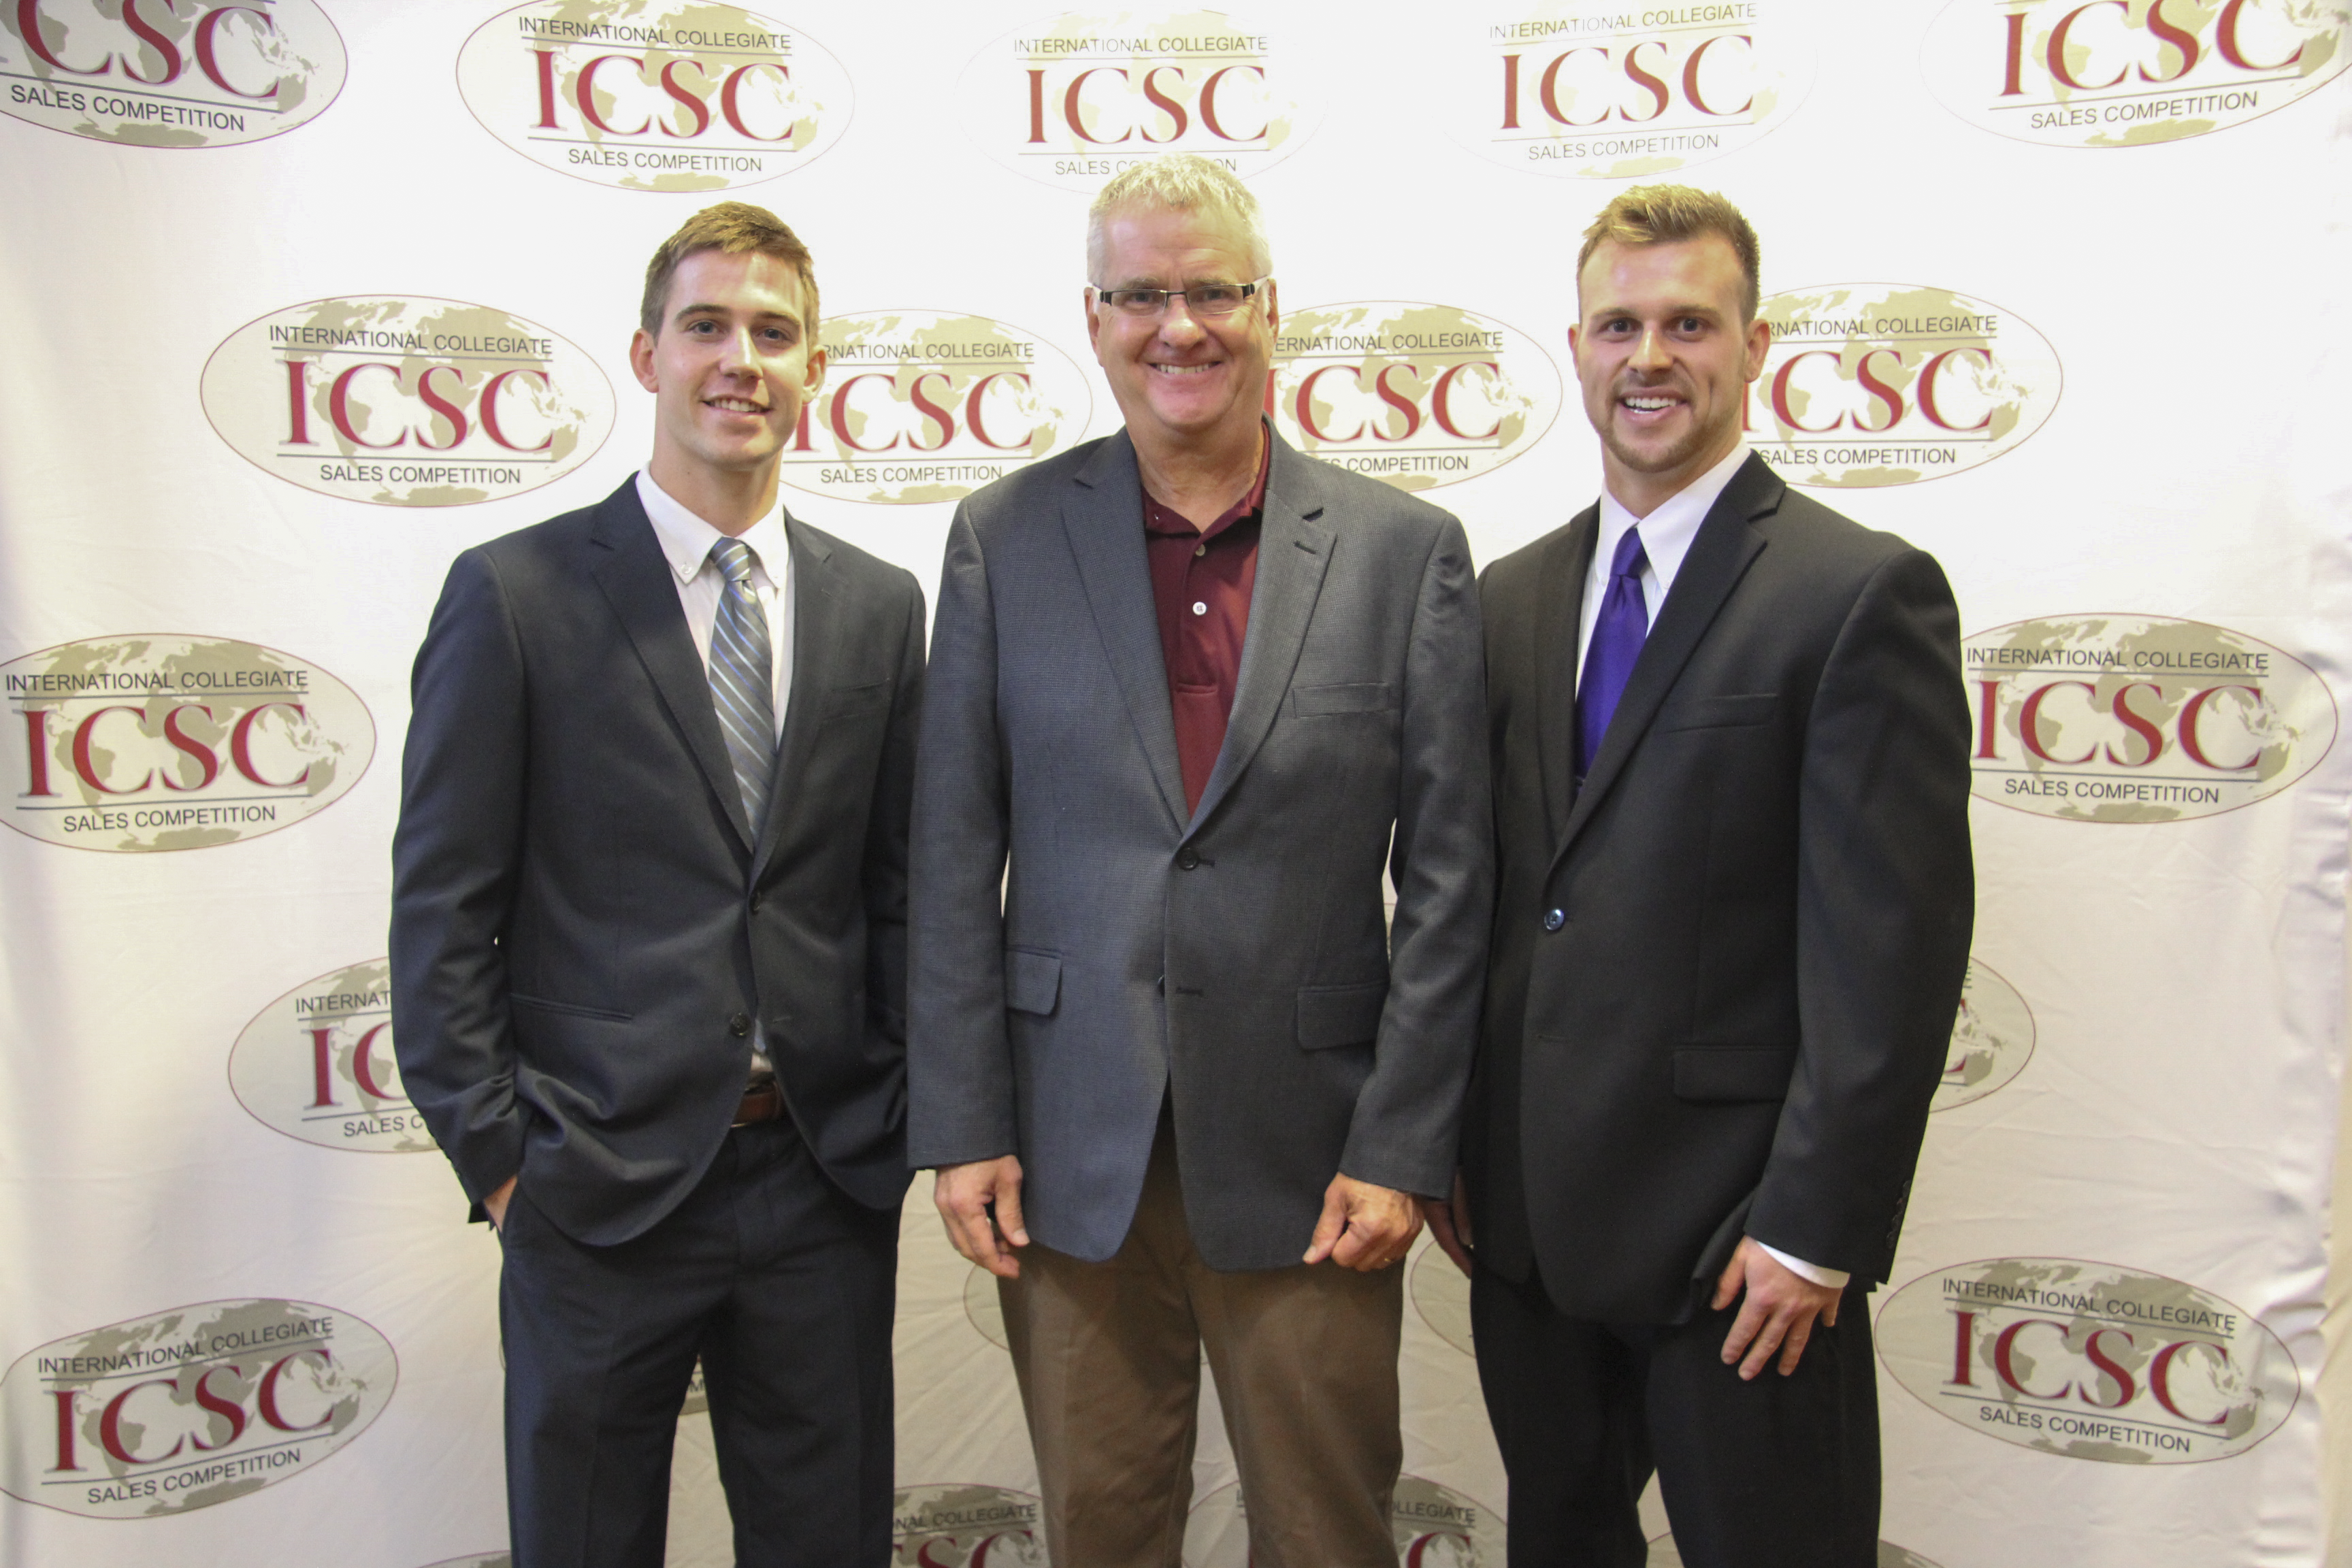 Marketing Students Compete in International Sales Competition